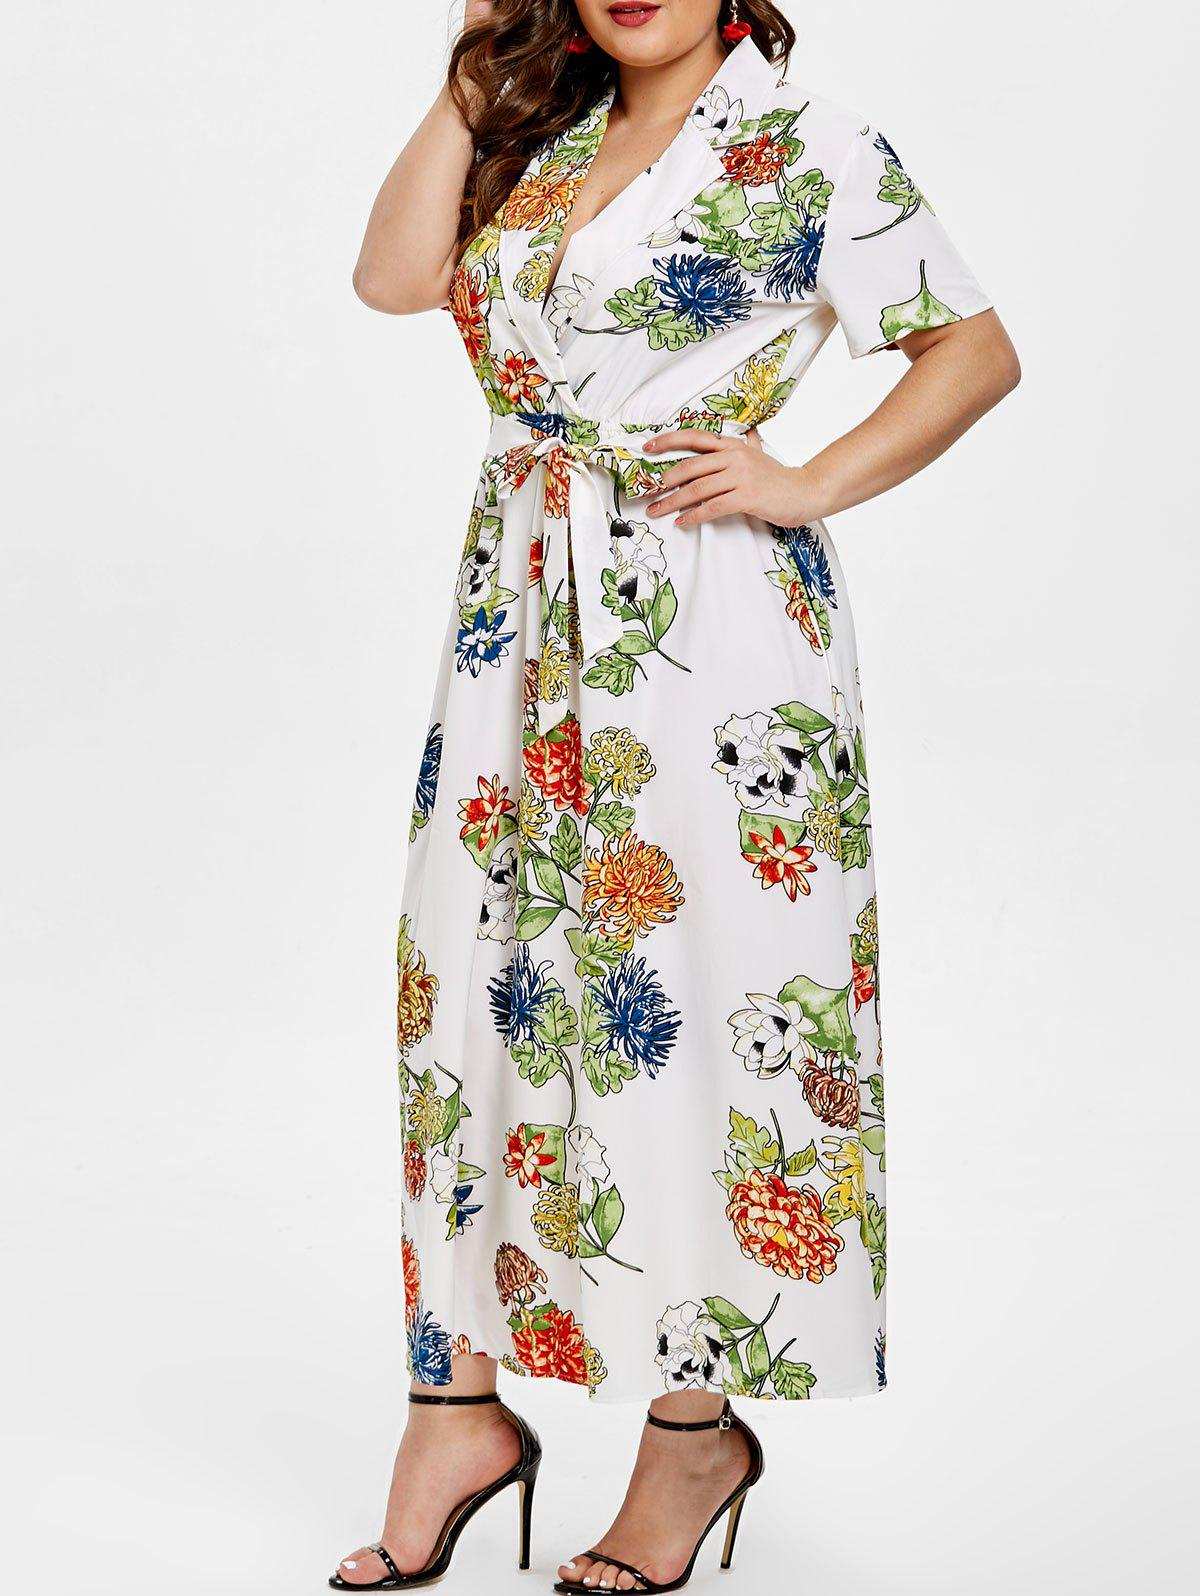 Chic Lapel Neck Plus Size Floral Print Dress with Belt